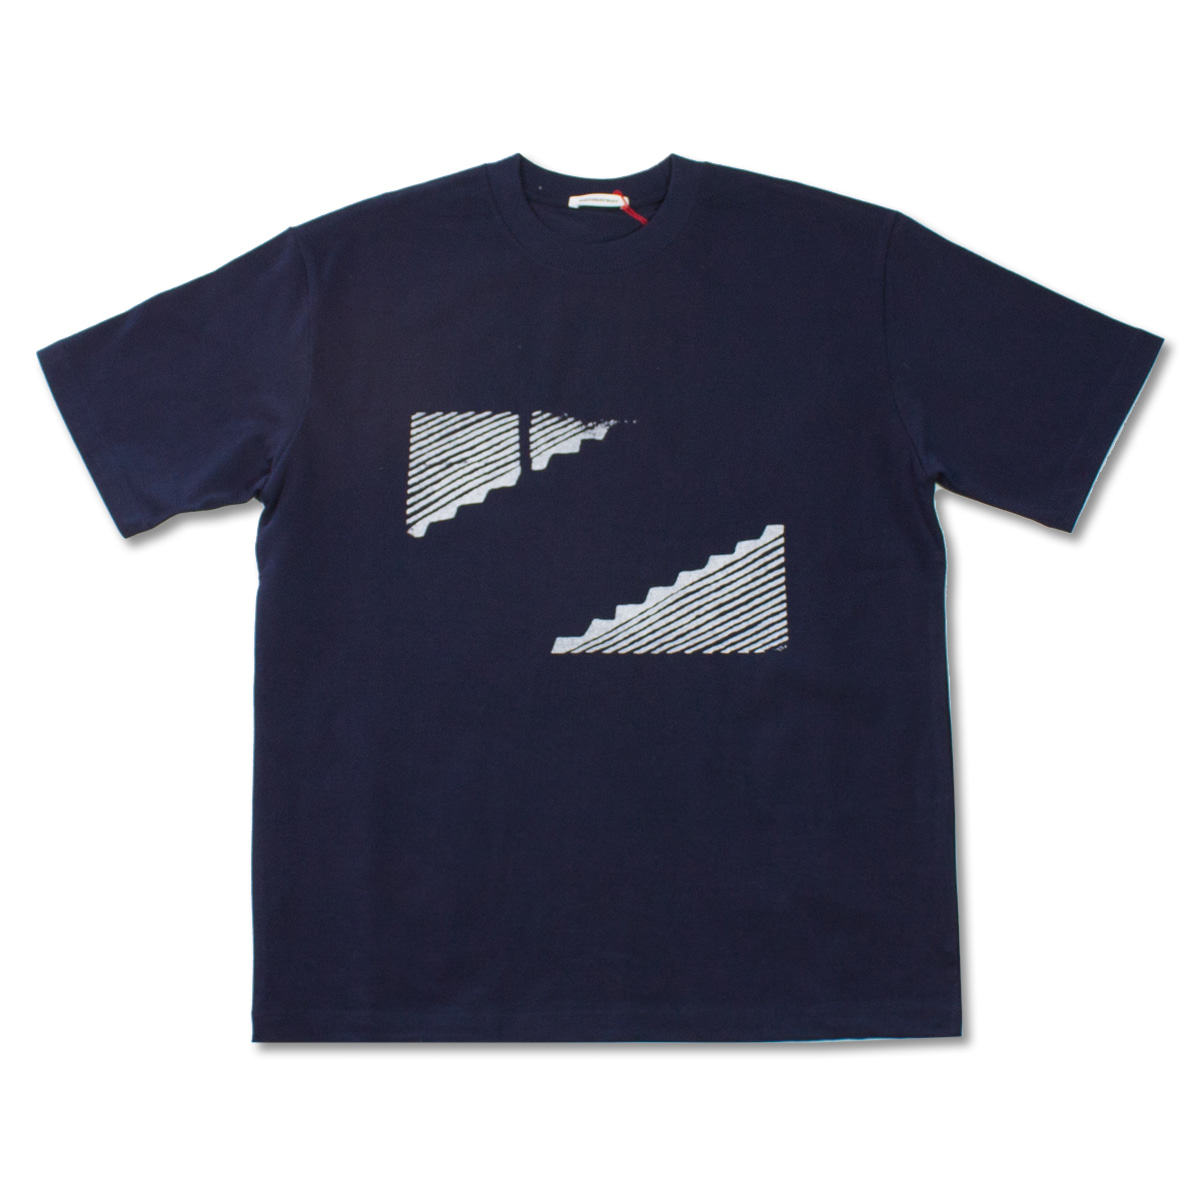 [BIRTHDAYSUIT] GRAVITY T-SHIRT 'NAVY'